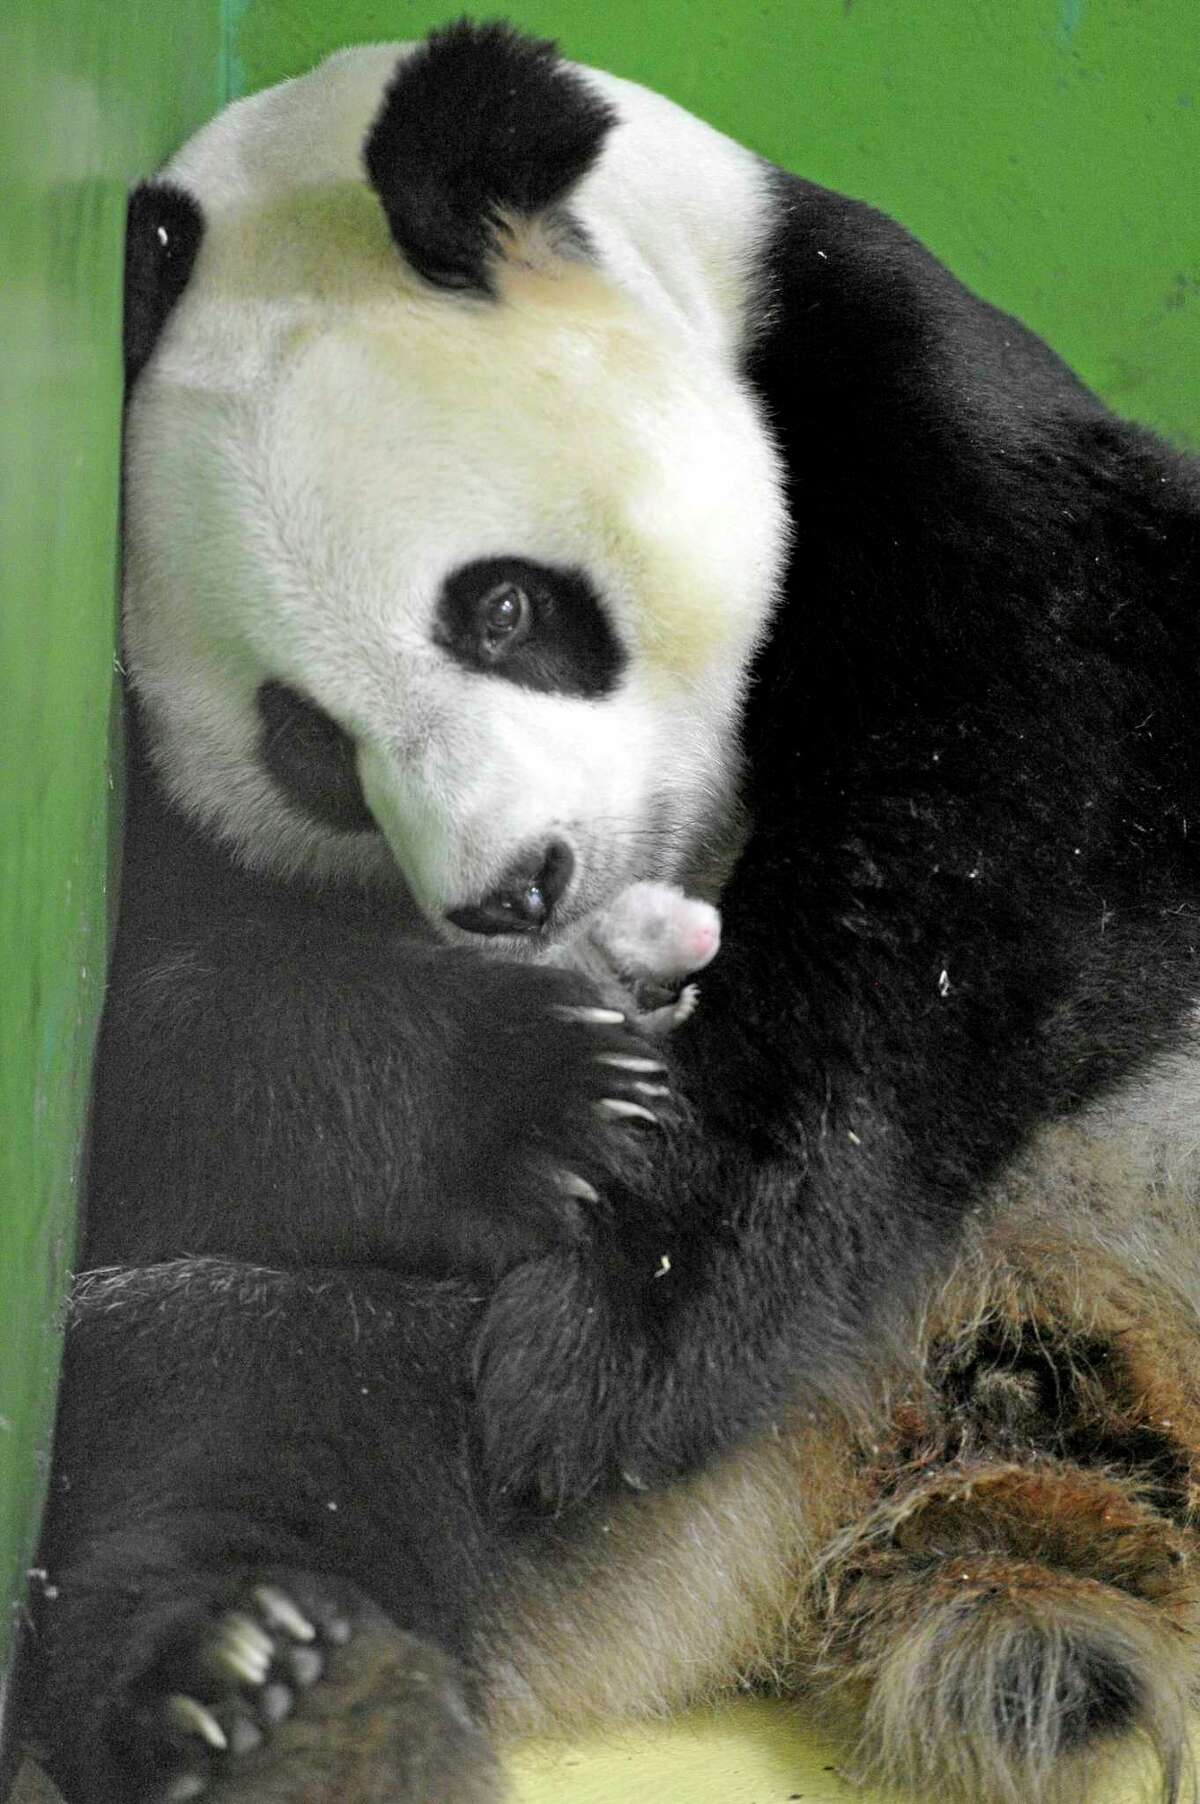 In this photo taken Sunday Aug. 10, 2014, Giant panda Ju Xiao caresses one of her triplet panda cubs in her cell at the Chimelong Safari Park in Guangzhou in south China's Guangdong province. China announced Tuesday, Aug. 12, 2014 the birth of extremely rare panda triplets in a further success for the country's artificial breeding program. The three cubs were born July 29 in the southern city of Guangzhou, but breeders delayed an announcement until they were sure all three would survive, the official China News Service said.(AP Photo) CHINA OUT